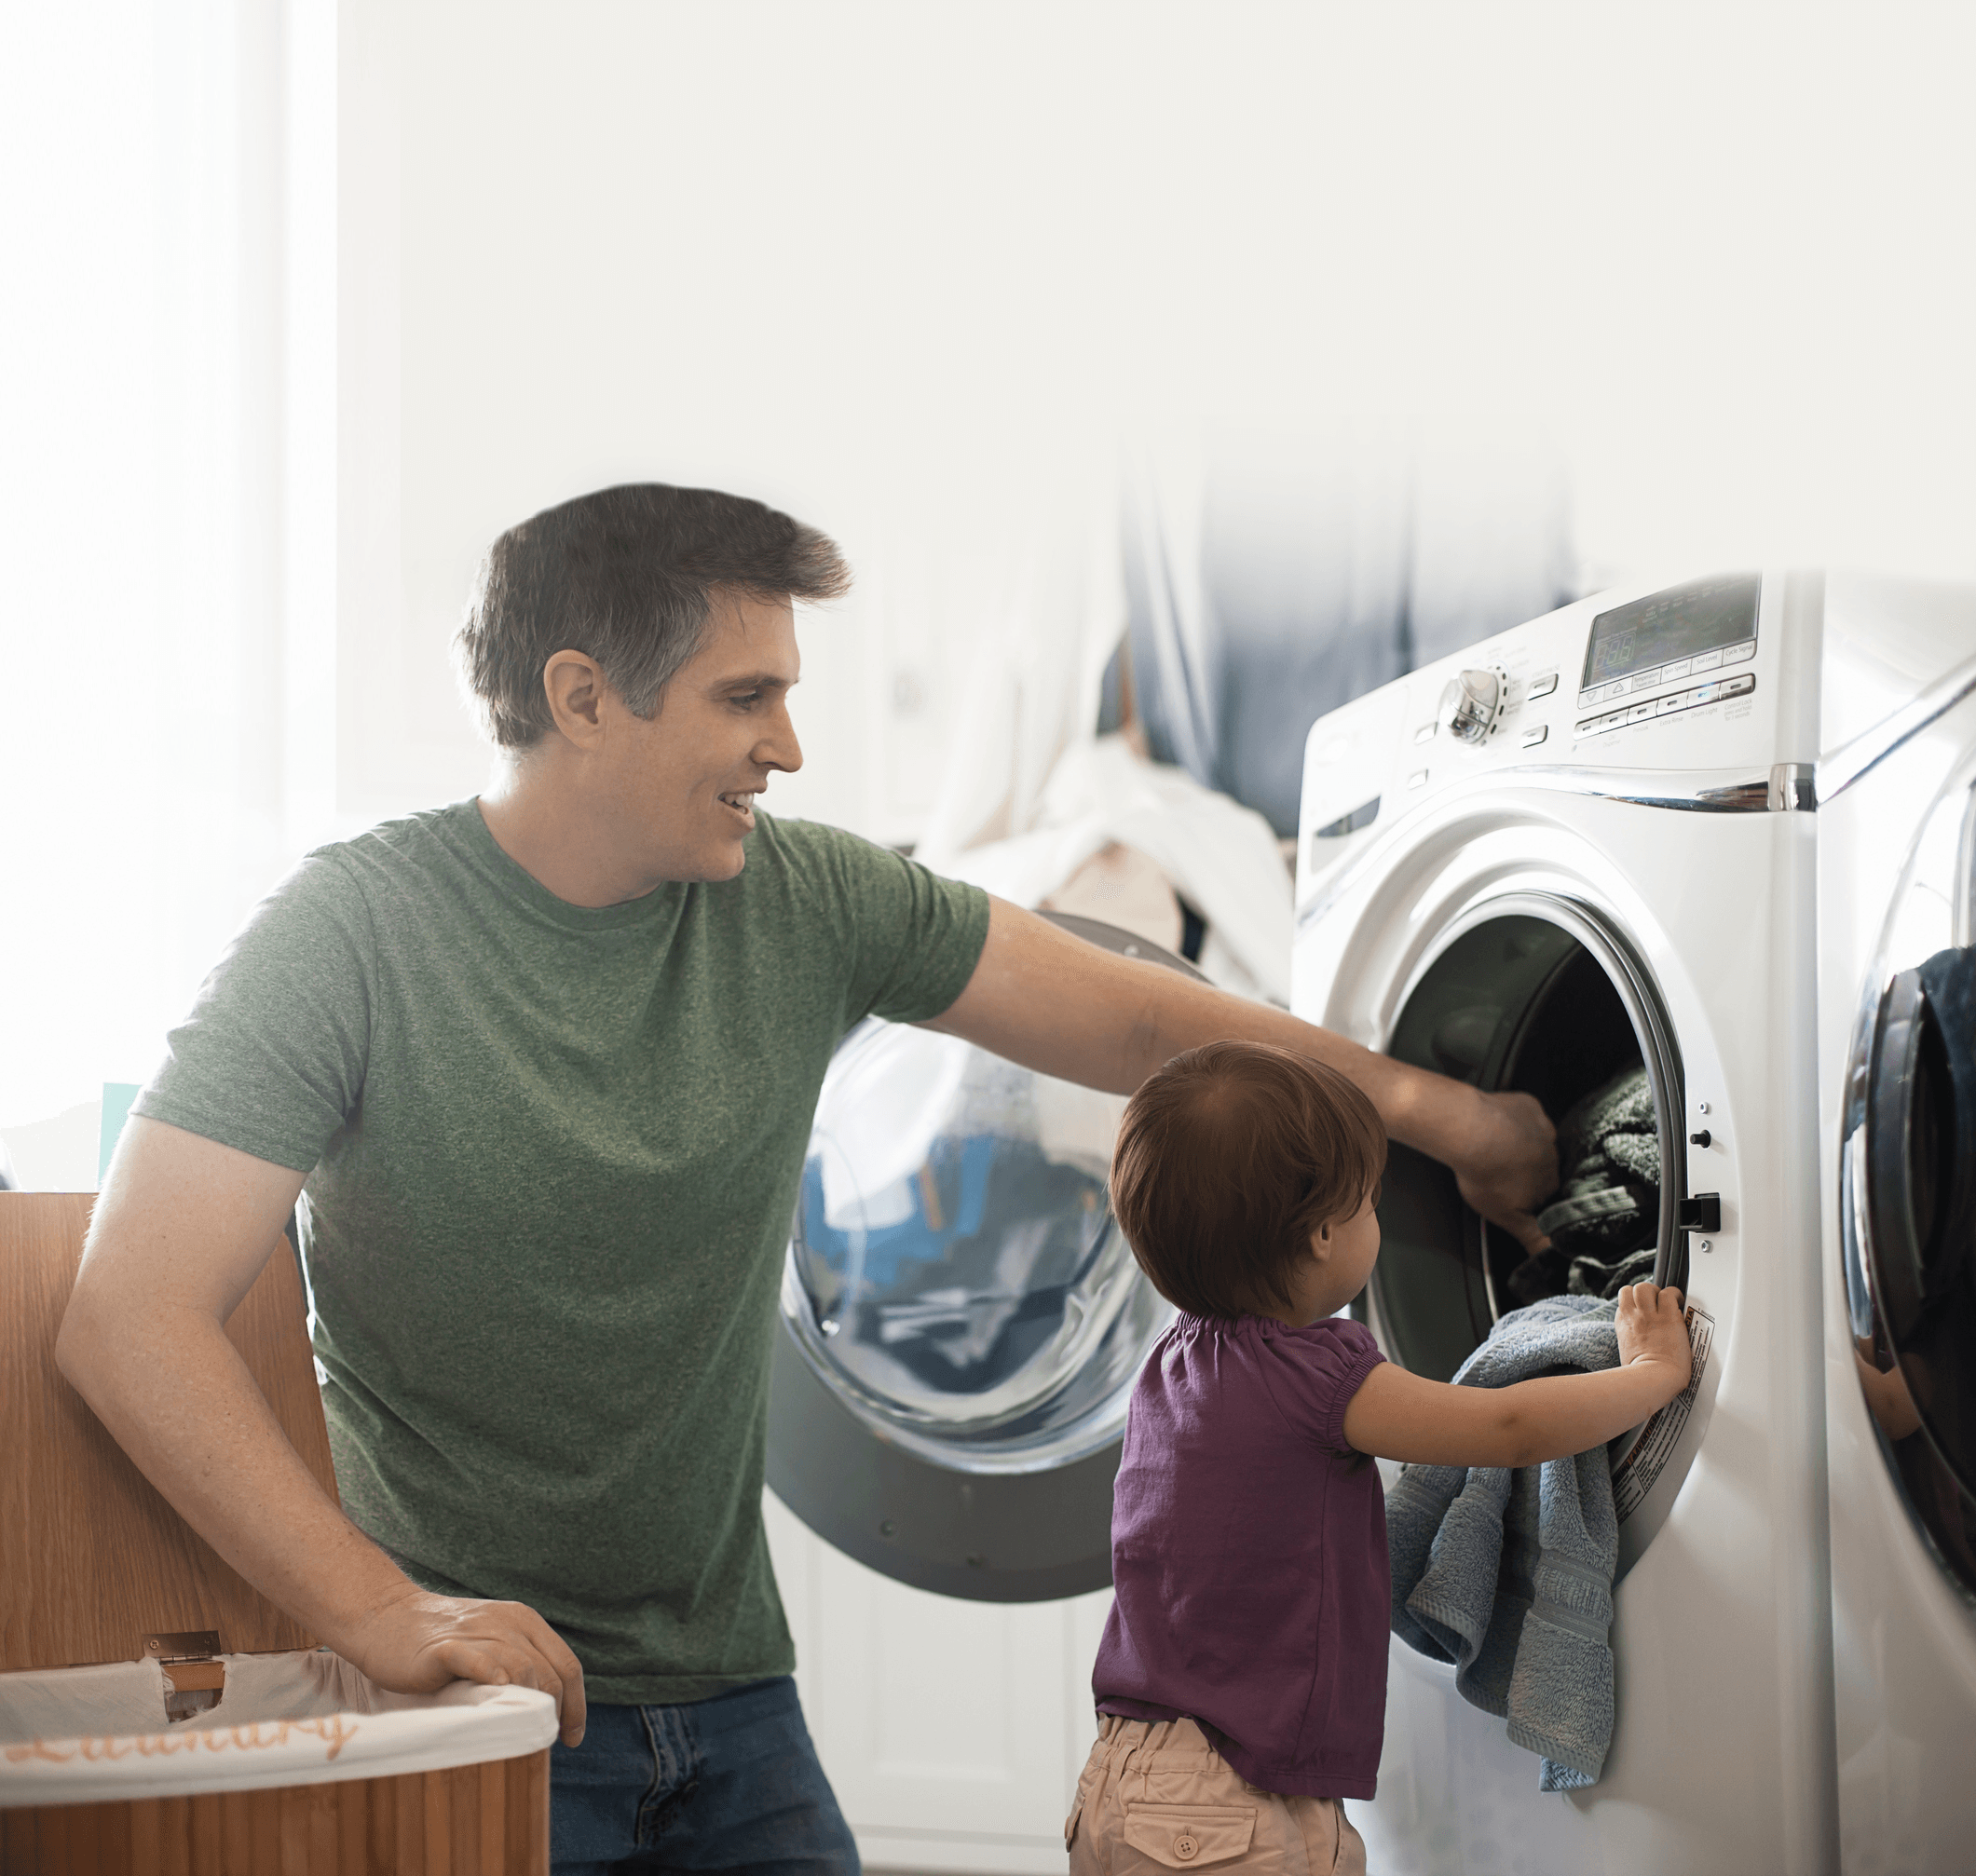 Father and Son putting laundry into clothes washer